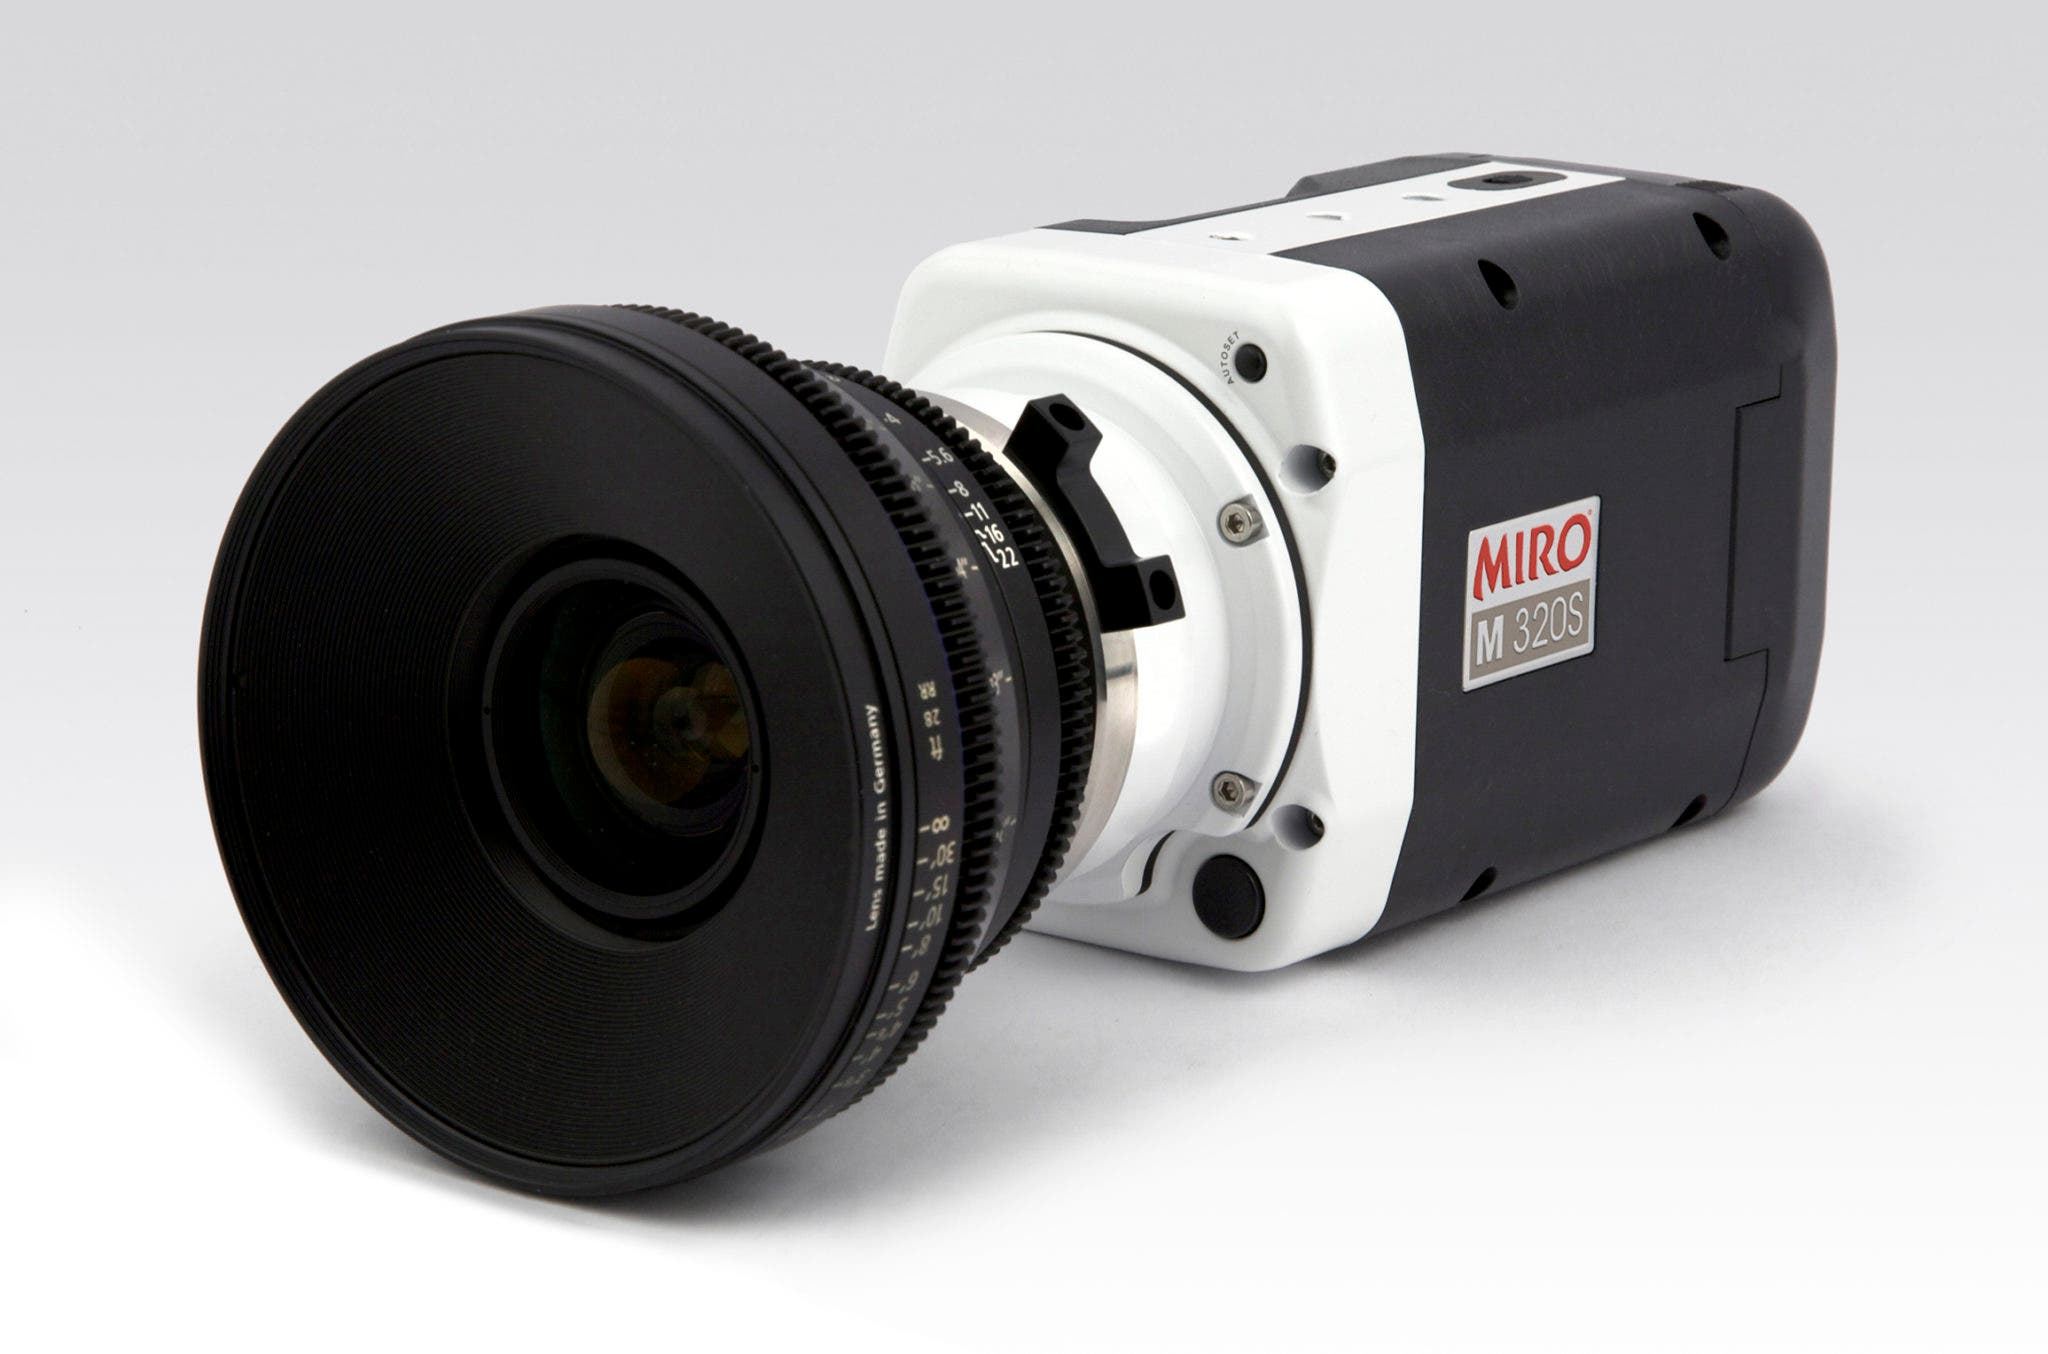 Another High-Speed Camera From Vision Research: The Phantom Miro M320S